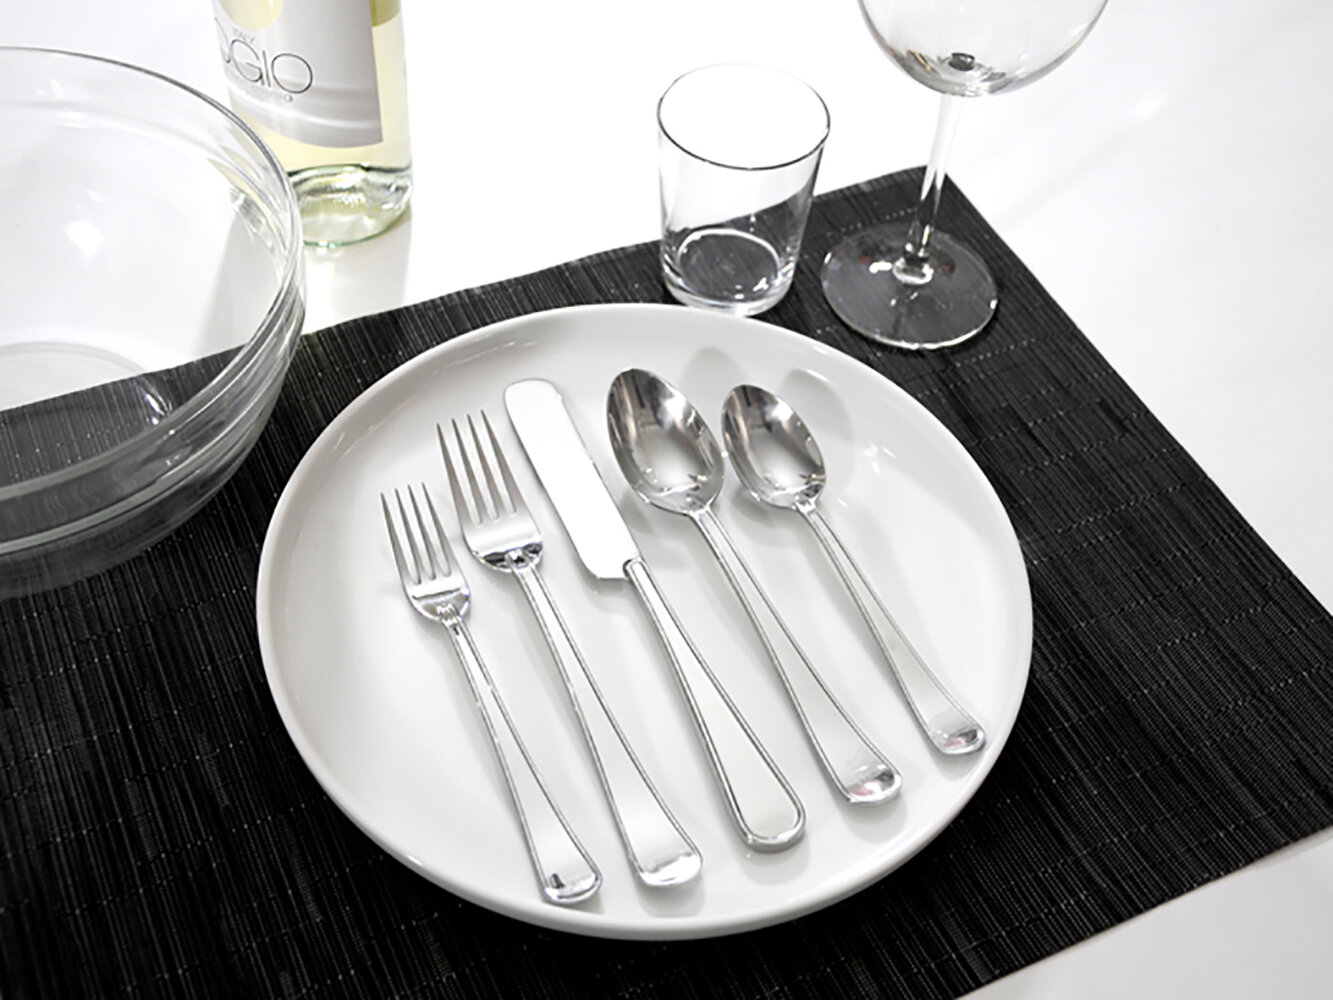 Gourmet Settings Gs Army 20 Piece 18 10 Stainless Steel Flatware Set Service For 4 Reviews Wayfair